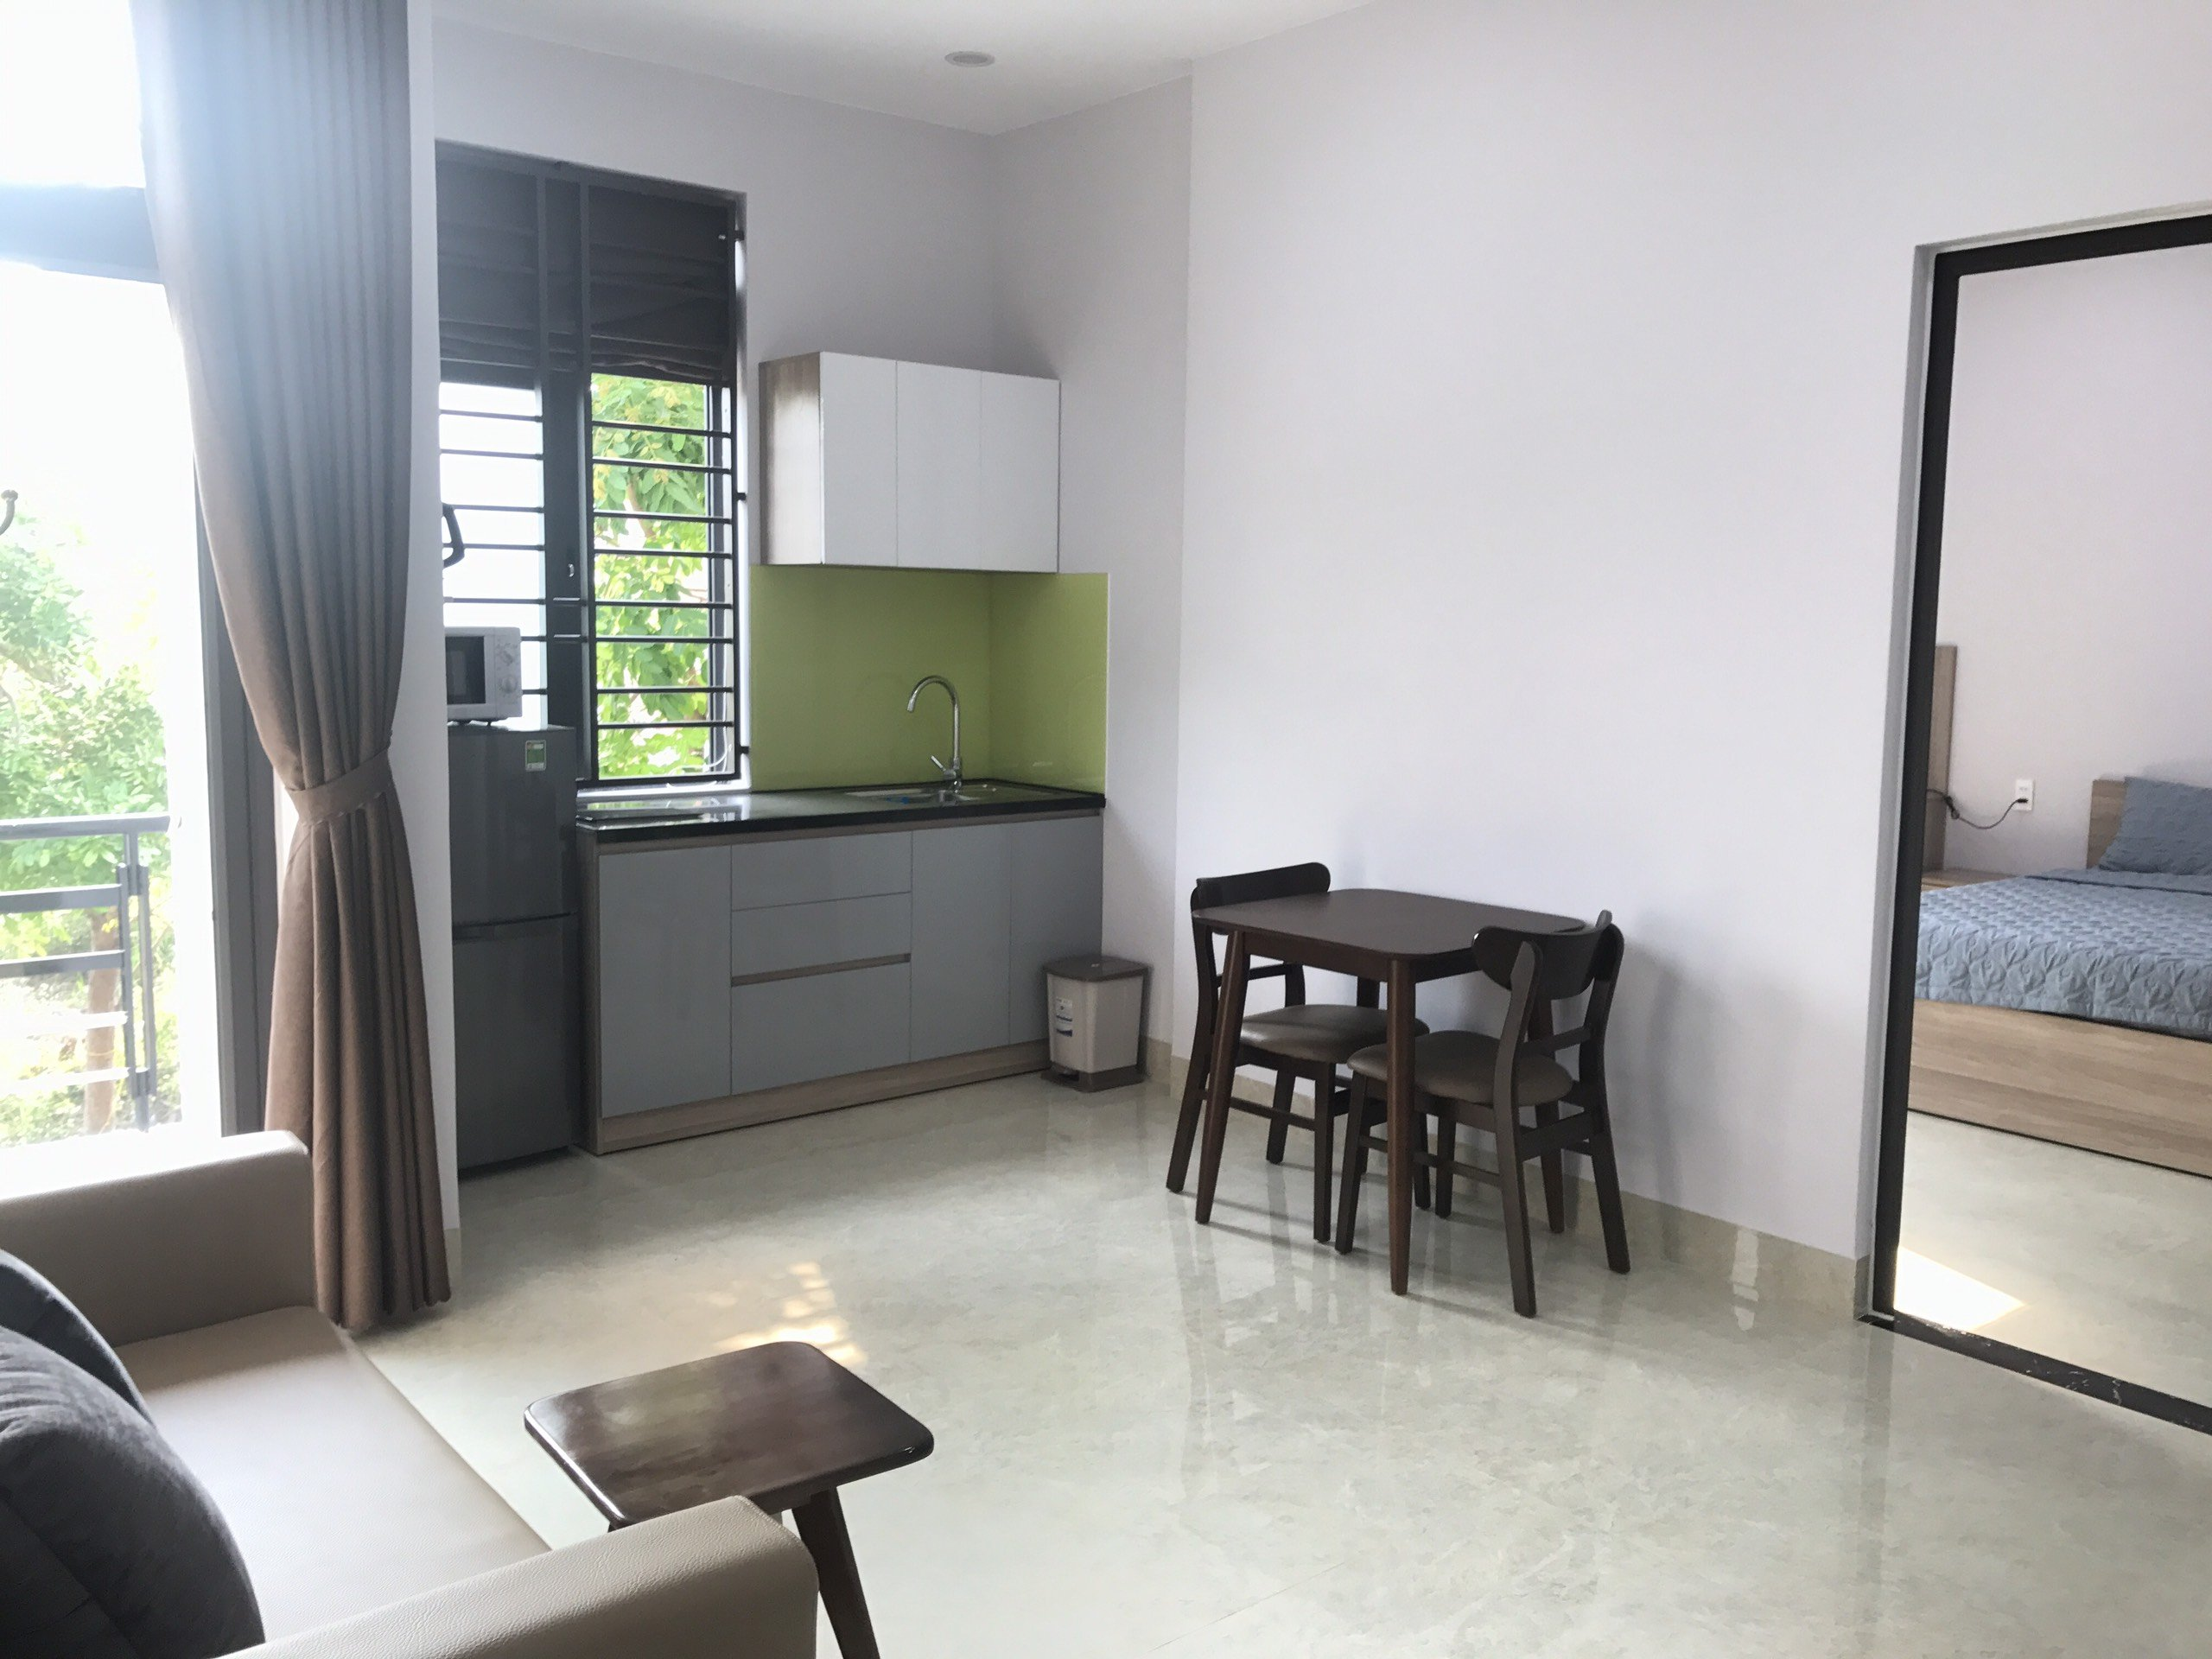 Apartment For Rent Da Nang with 2 balconies